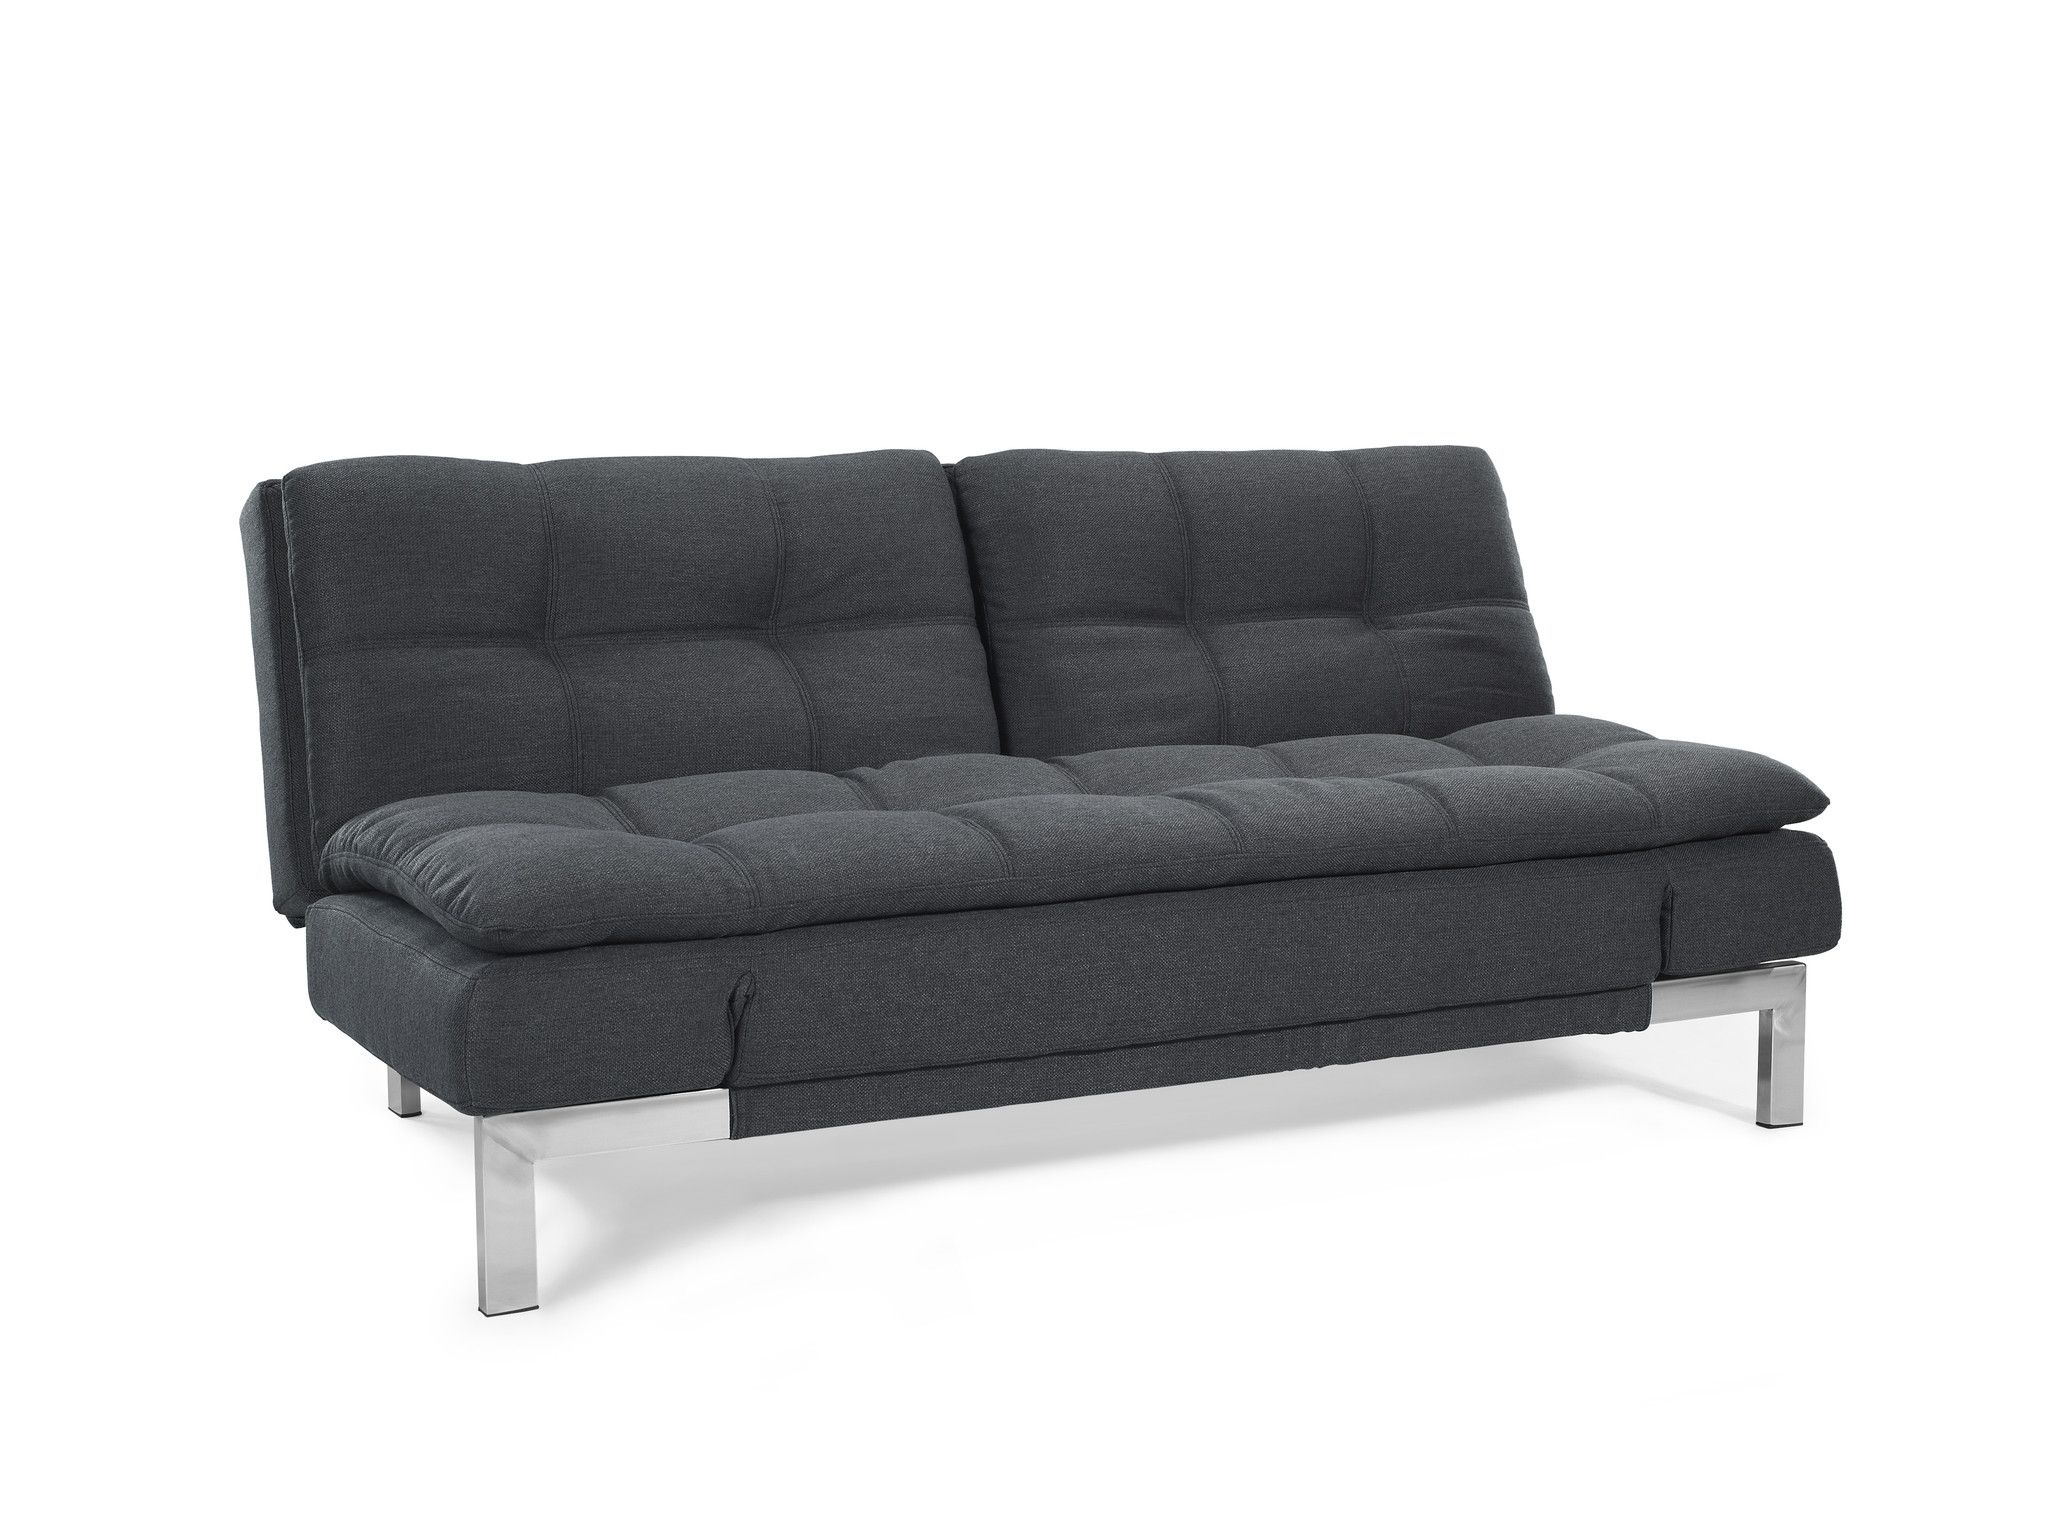 $496 Lifestyle Solutions Serta Dream Convertible Boca Sofa